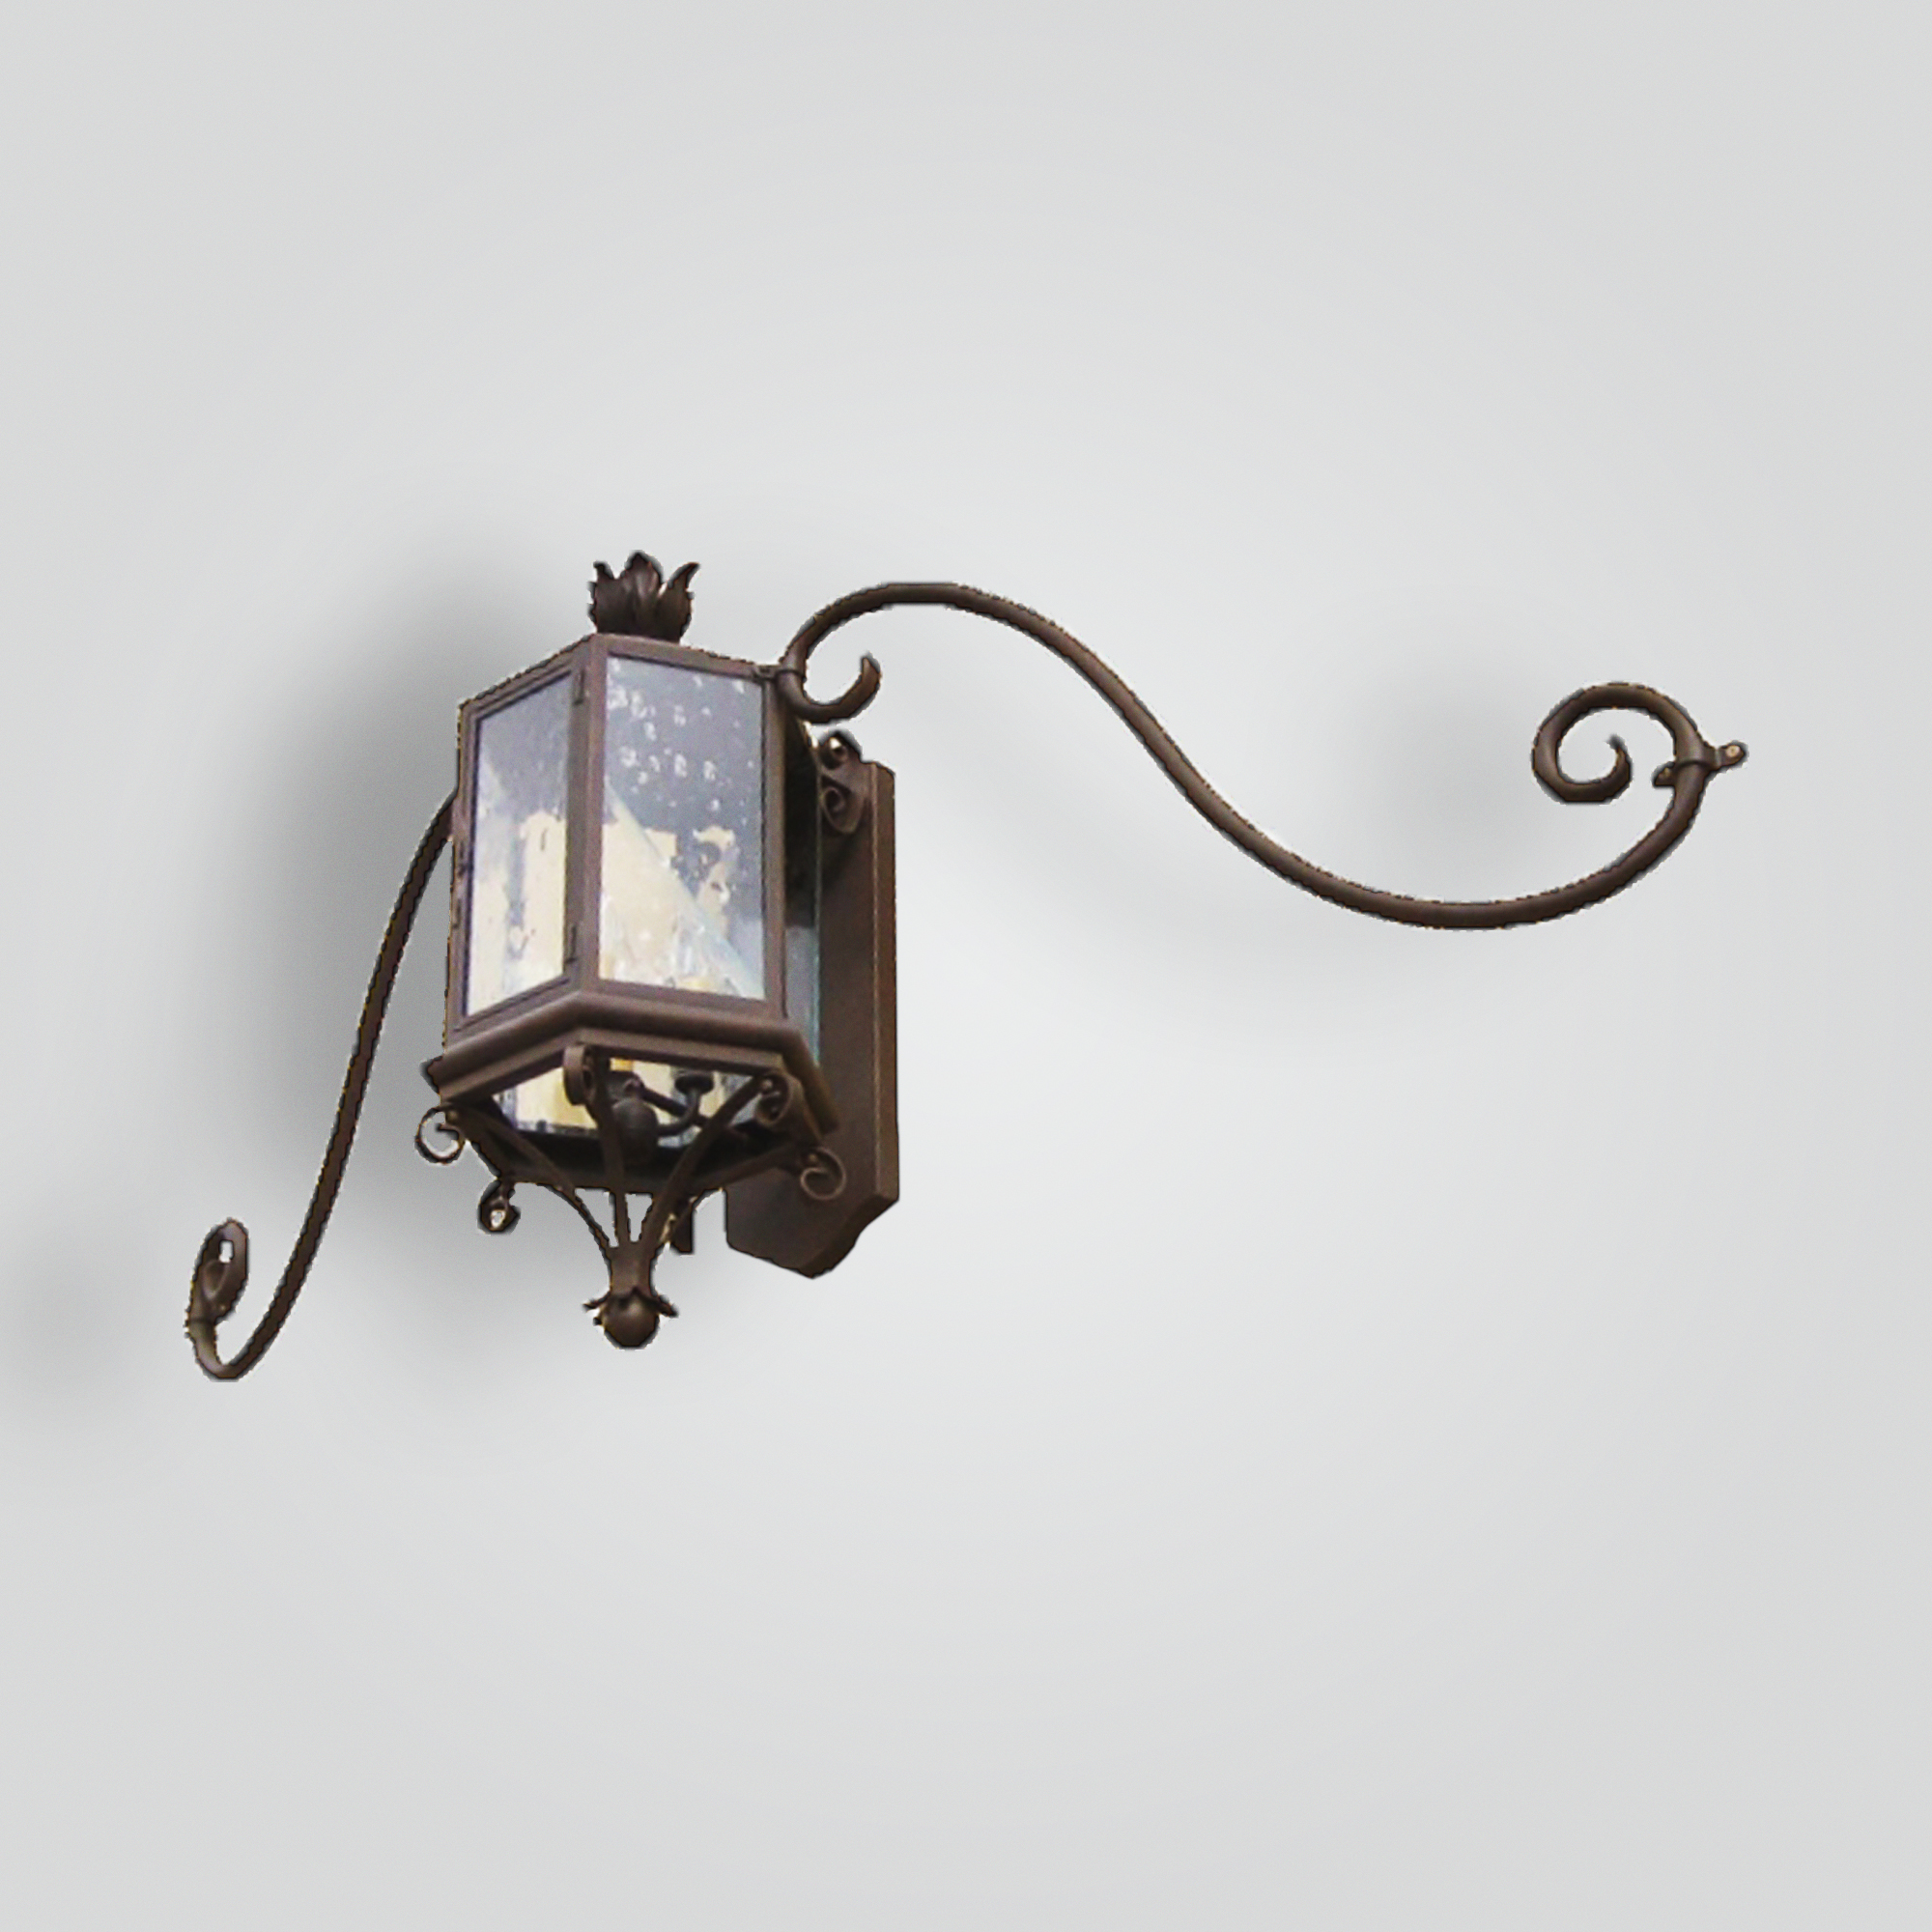 681-cb3-br-w-shba Transistional Lantern on Moustache Arm Bracket – ADG Lighting Collection